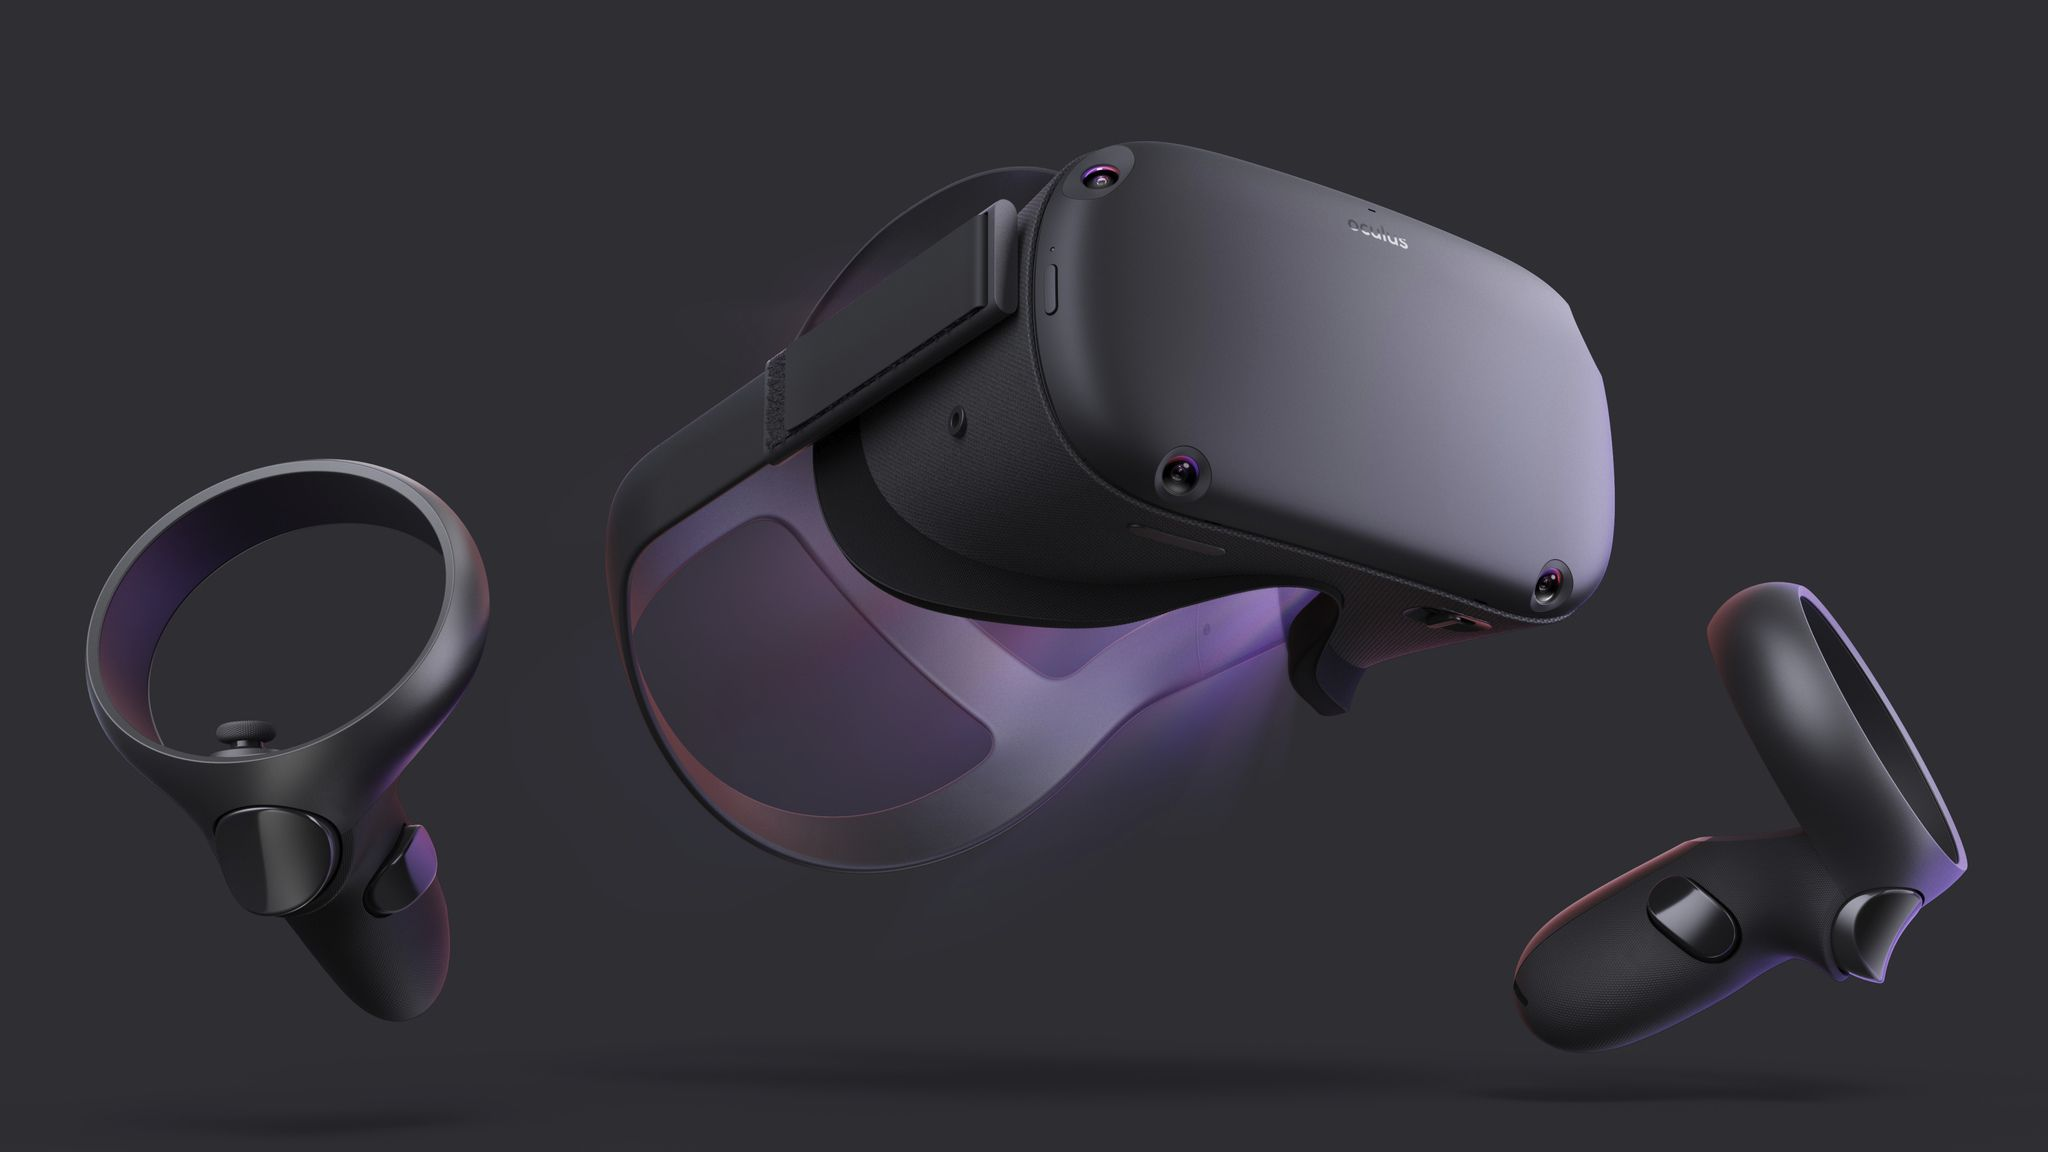 oculus quest virtual gafas